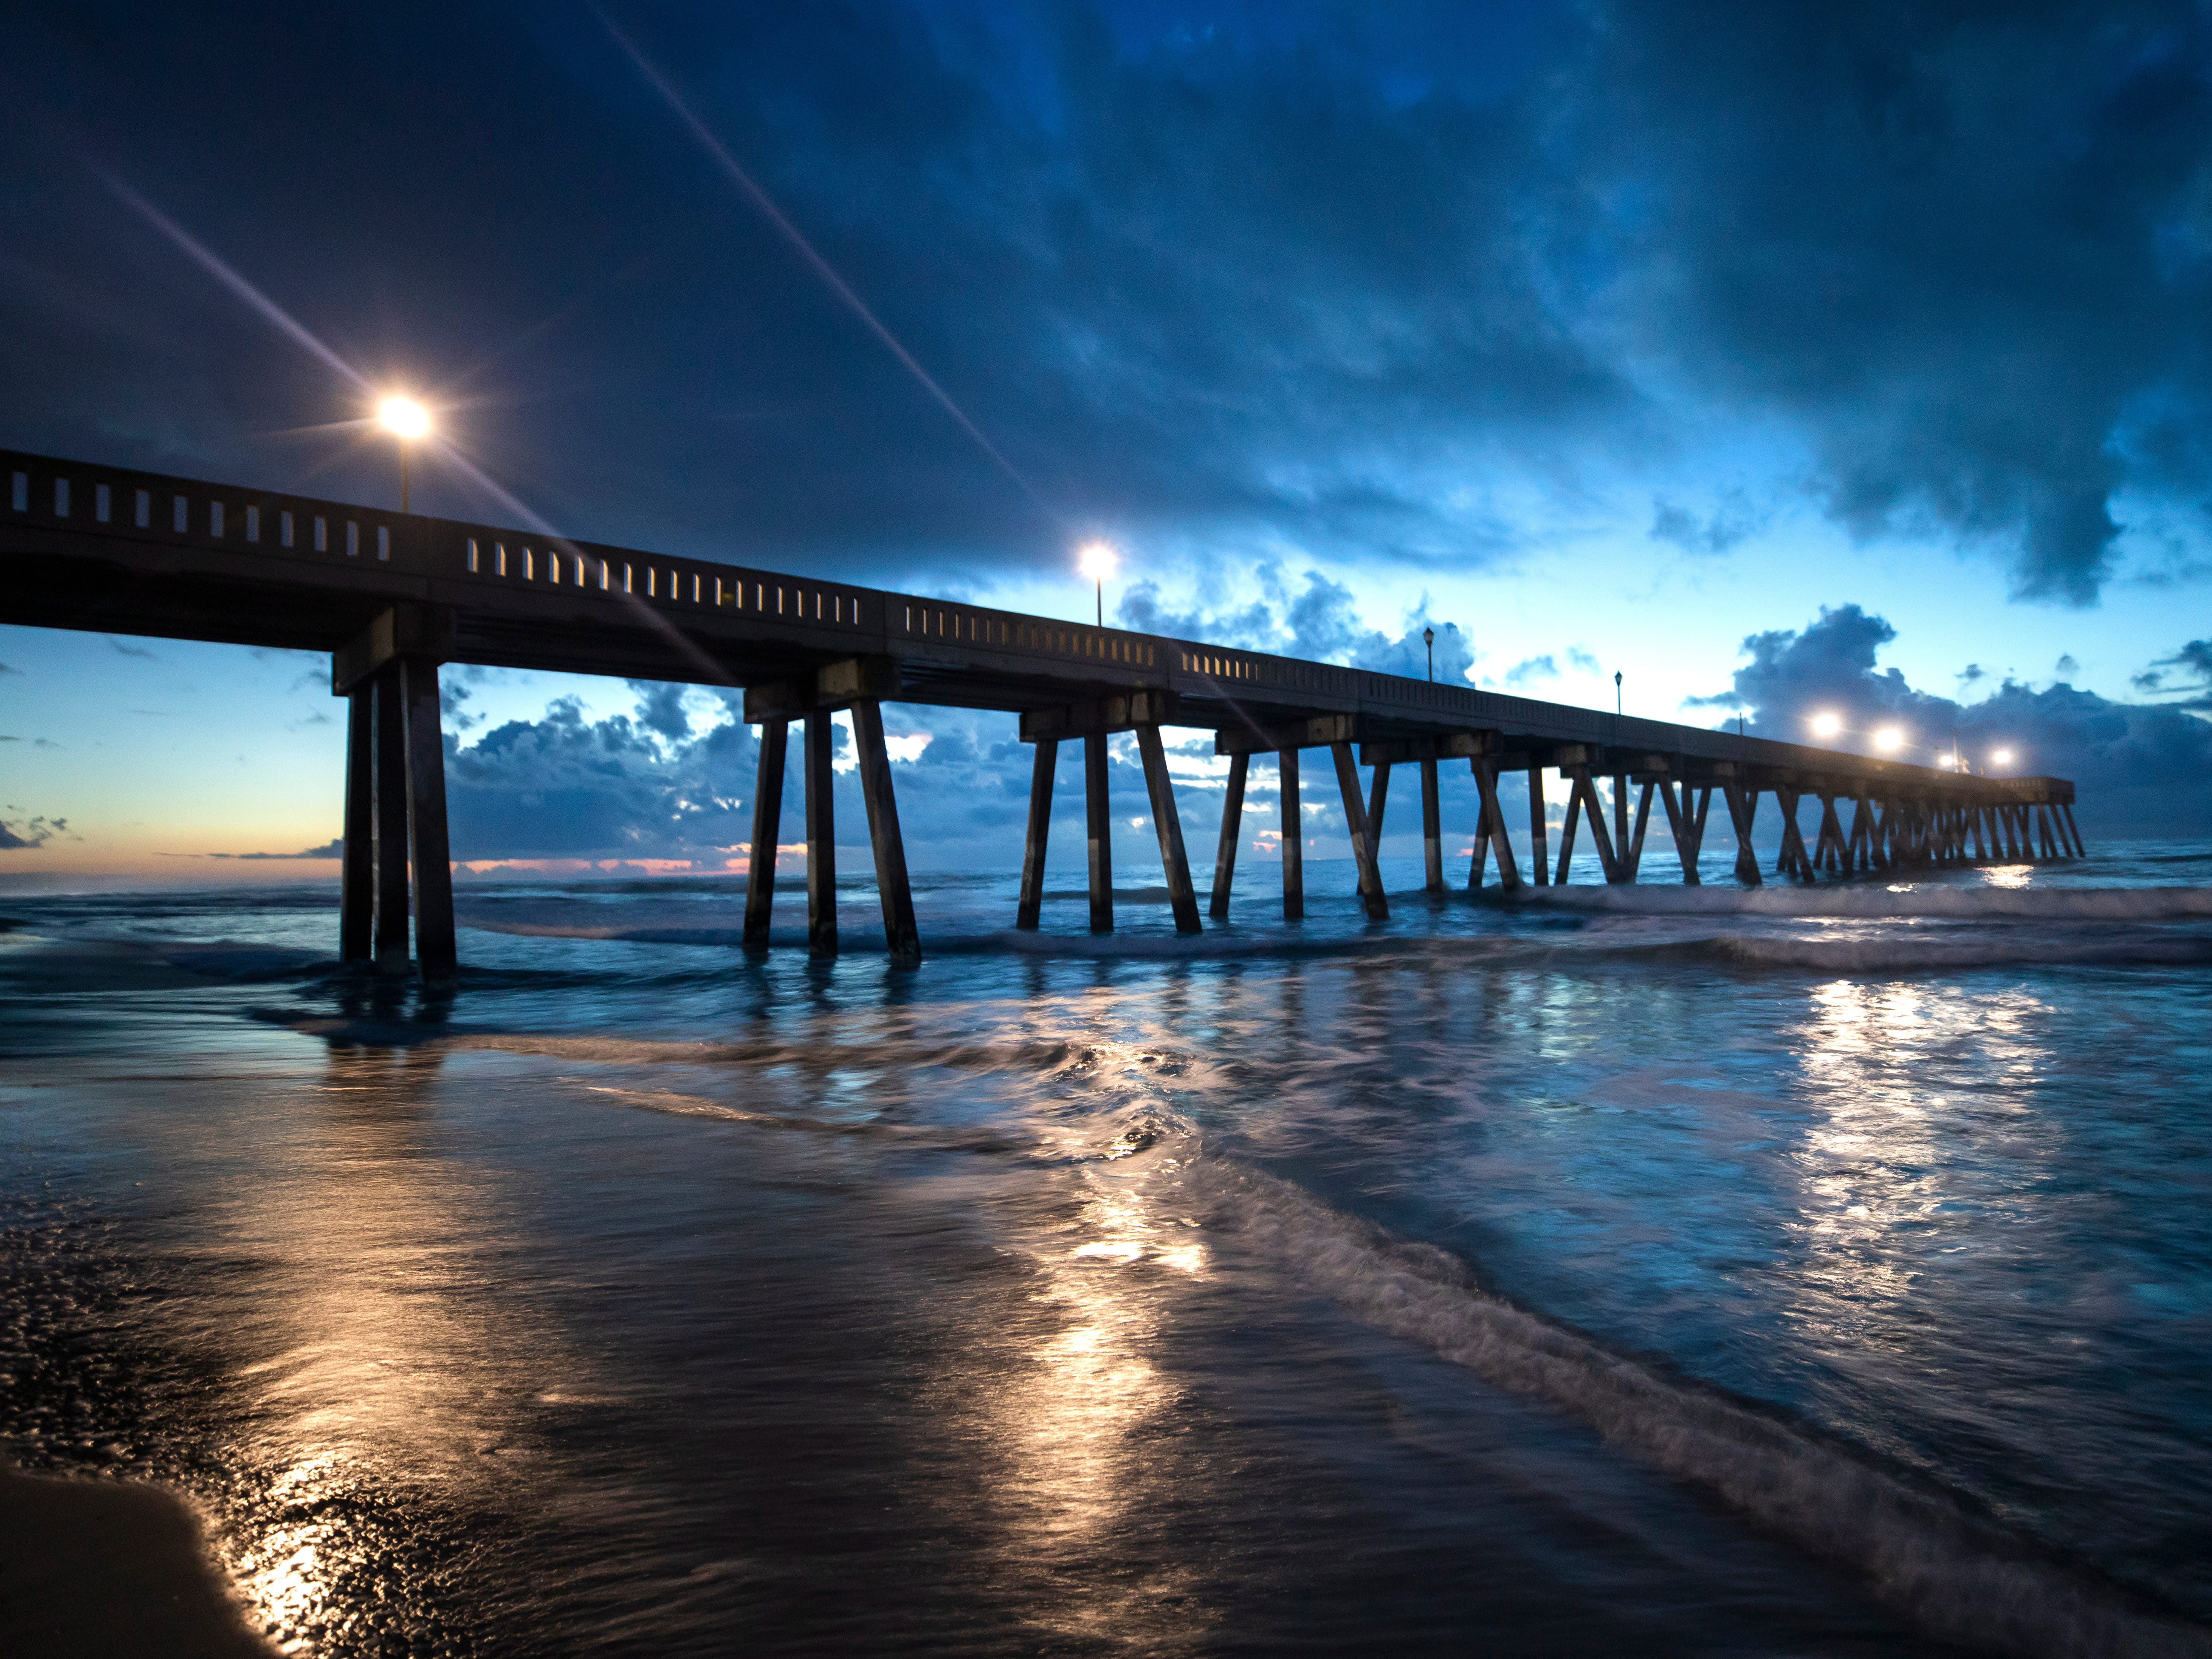 epa07014641 Johnny Mercer's Fishing Pier juts into the Atlantic Ocean at sunrise, less than two days before Hurricane Florence is expected to strike Wrightsville Beach, North Carolina, USA, 12 September 2018. Hurricane Florence is a category 4 storm on the Saffir-Simpson Hurricane Wind Scale, with winds toping 165 miles per hour. No category 4 hurricane has ever made landfall in North Carolina.